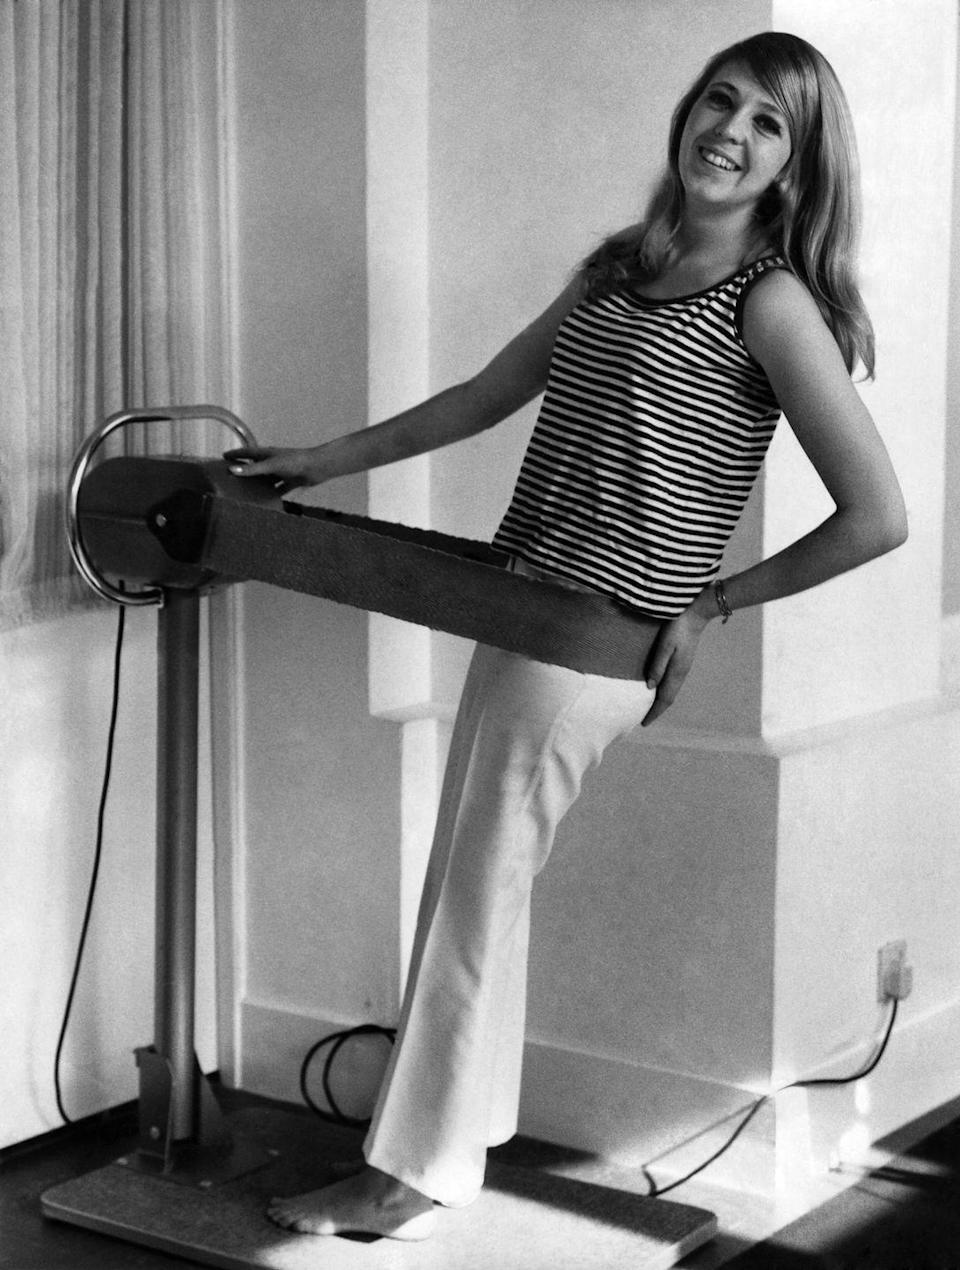 "<p>Not every aspect of the fitness world was evolving. The vibrating machines of the early 1900s came back as a trend in the 1960s. This woman uses a <a href=""https://wellness360magazine.com/fitness-trends/"" rel=""nofollow noopener"" target=""_blank"" data-ylk=""slk:vibrating belt"" class=""link rapid-noclick-resp"">vibrating belt</a>, which was believed to vibrate away the pounds.<br></p>"